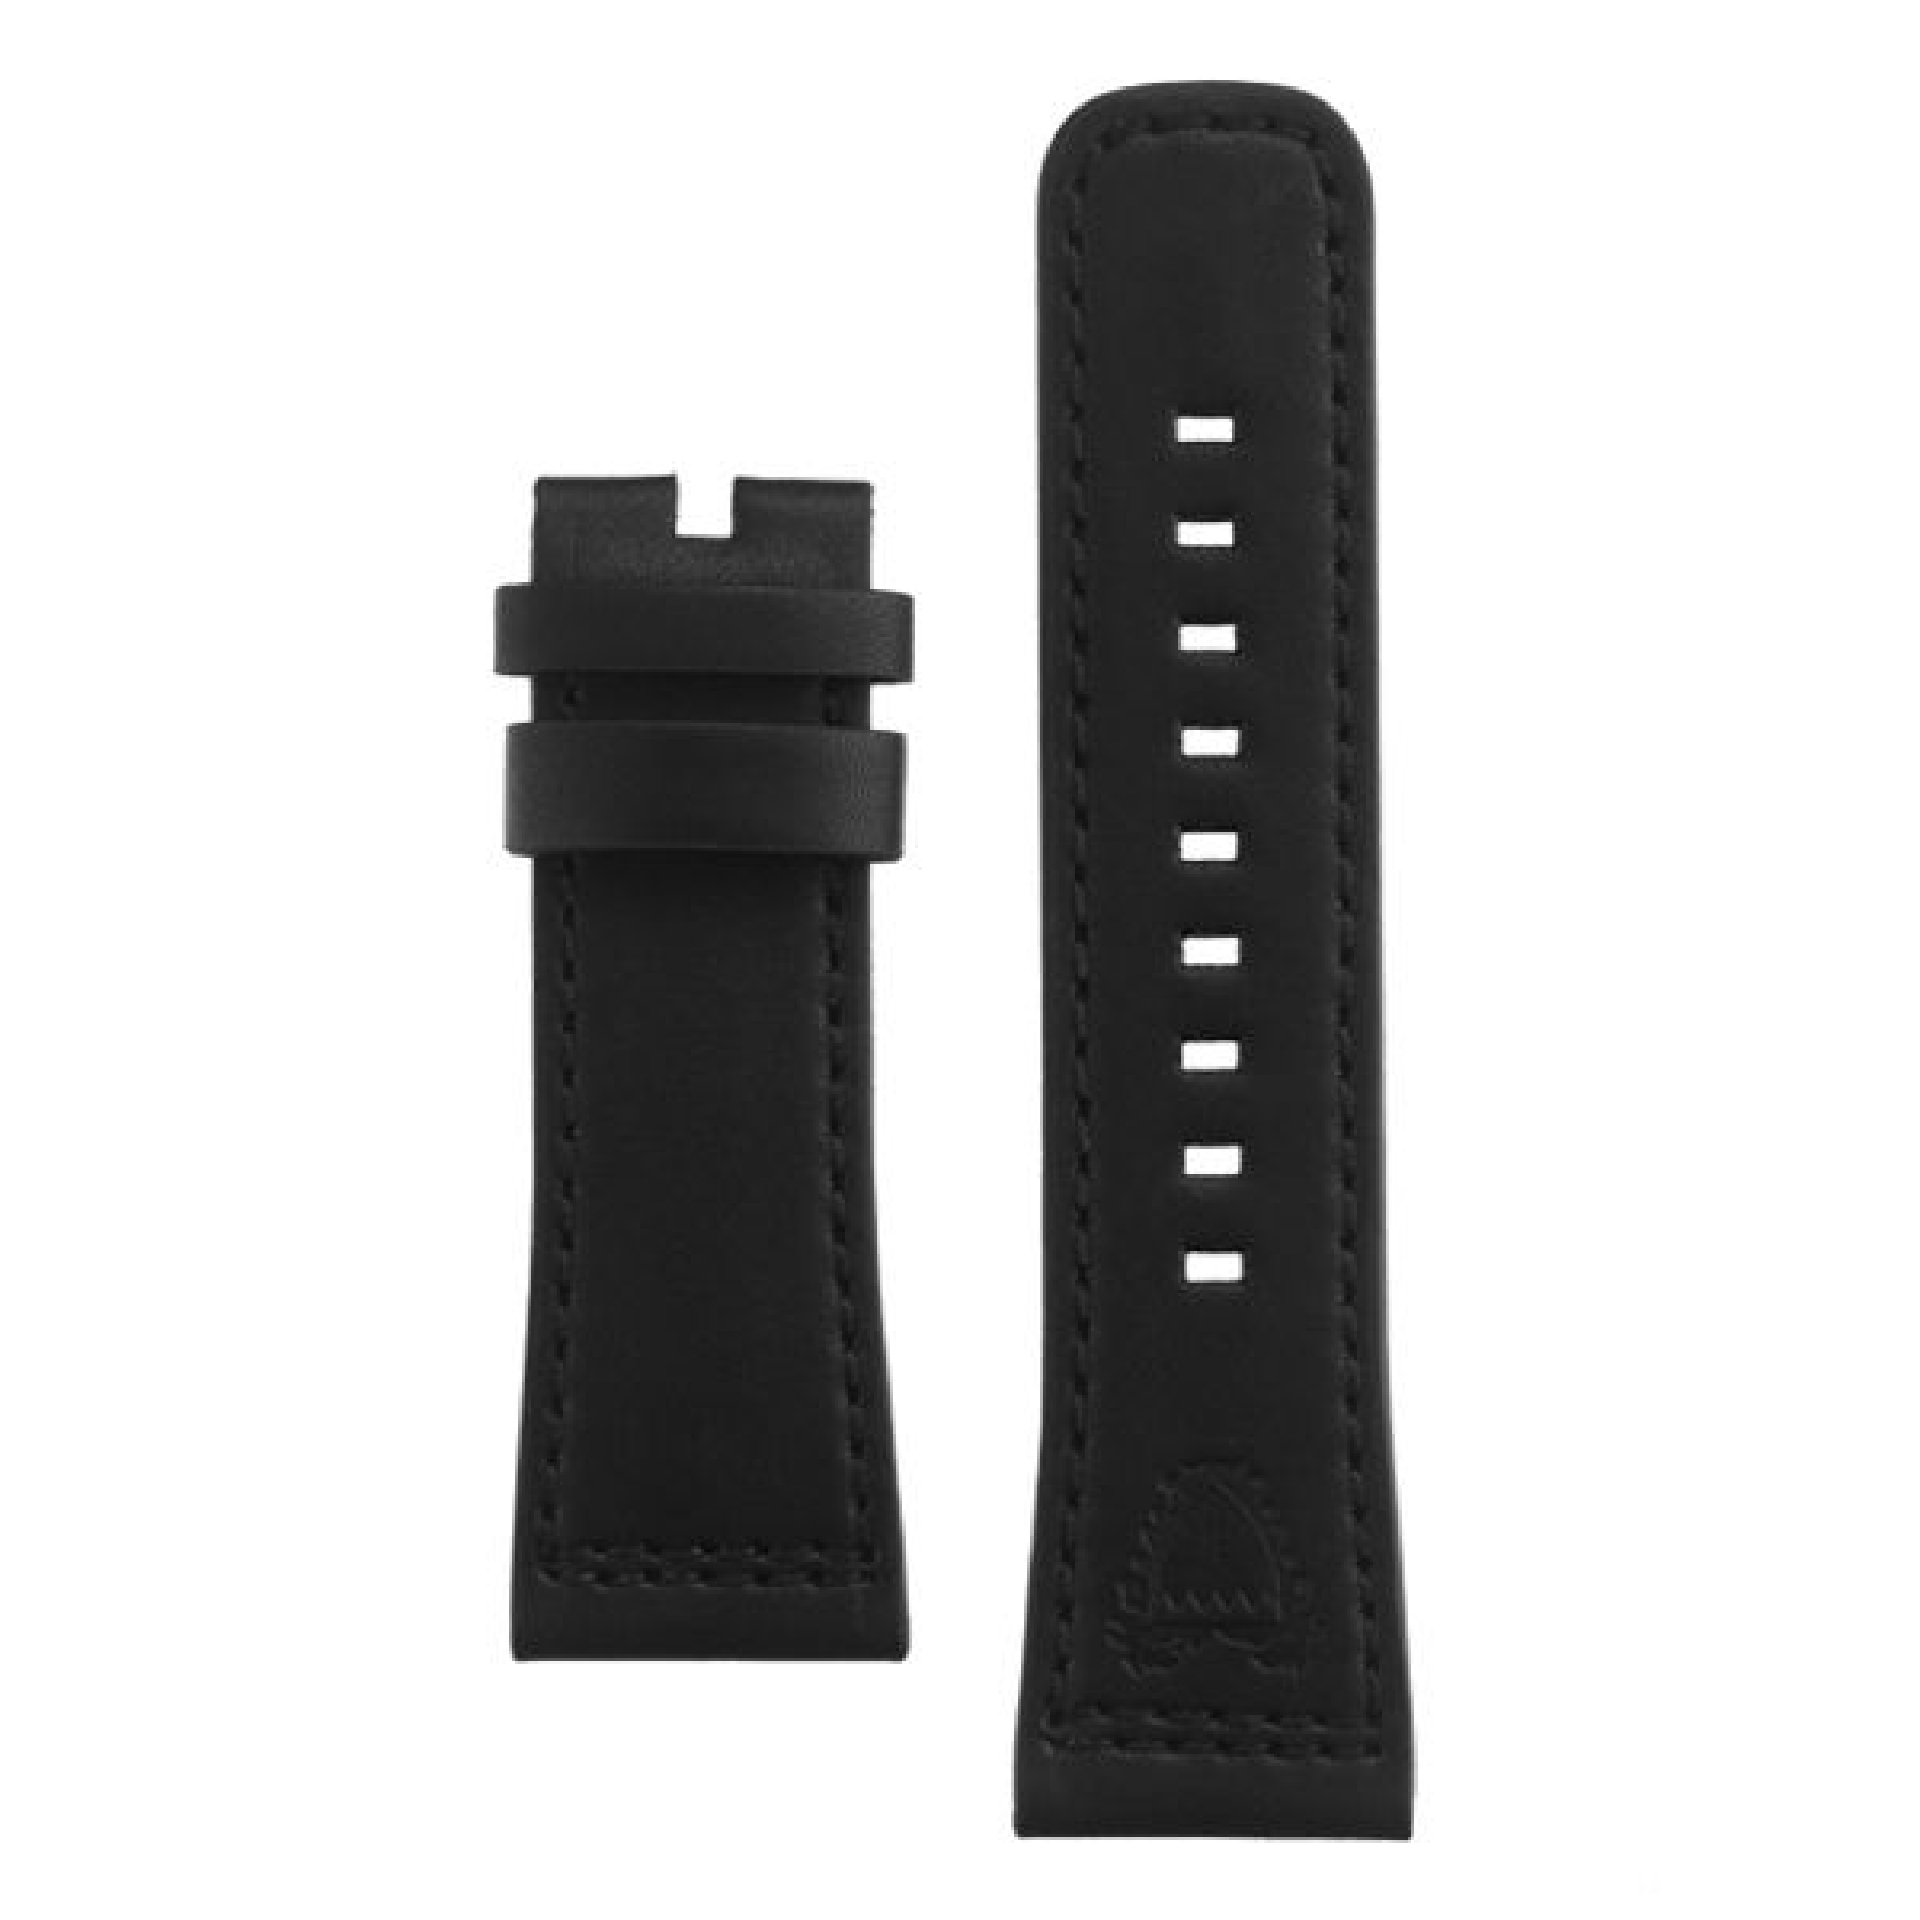 Leather strap black, Bahrain emblem